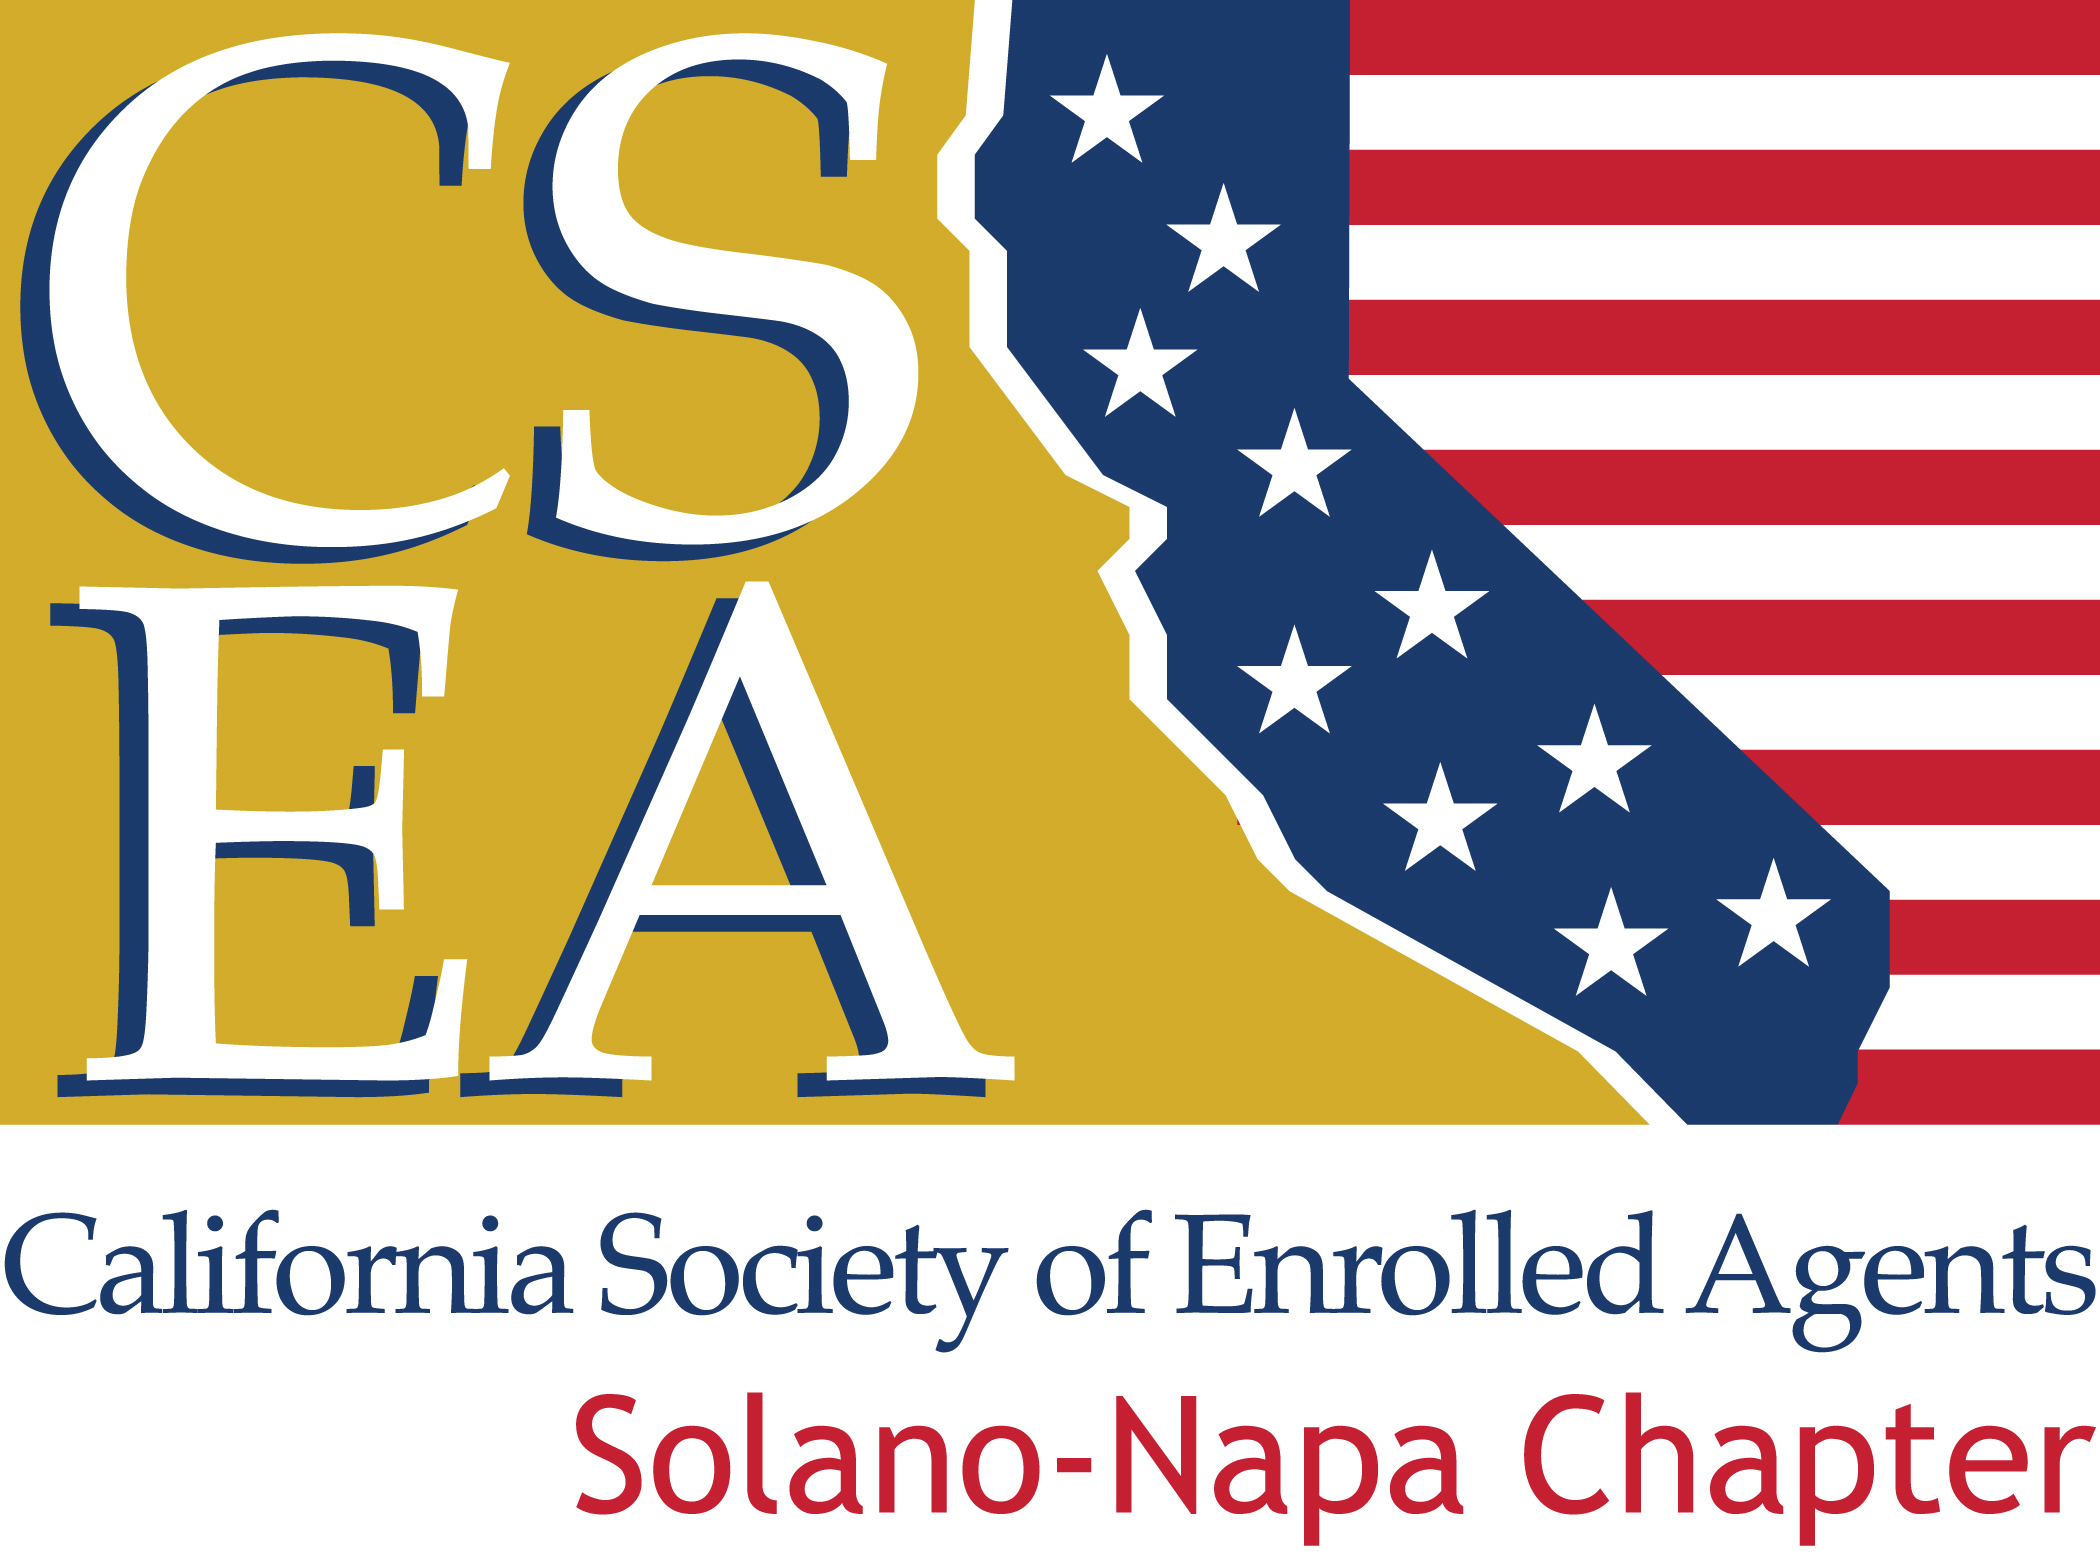 Solano-Napa Dinner & Educational Meeting